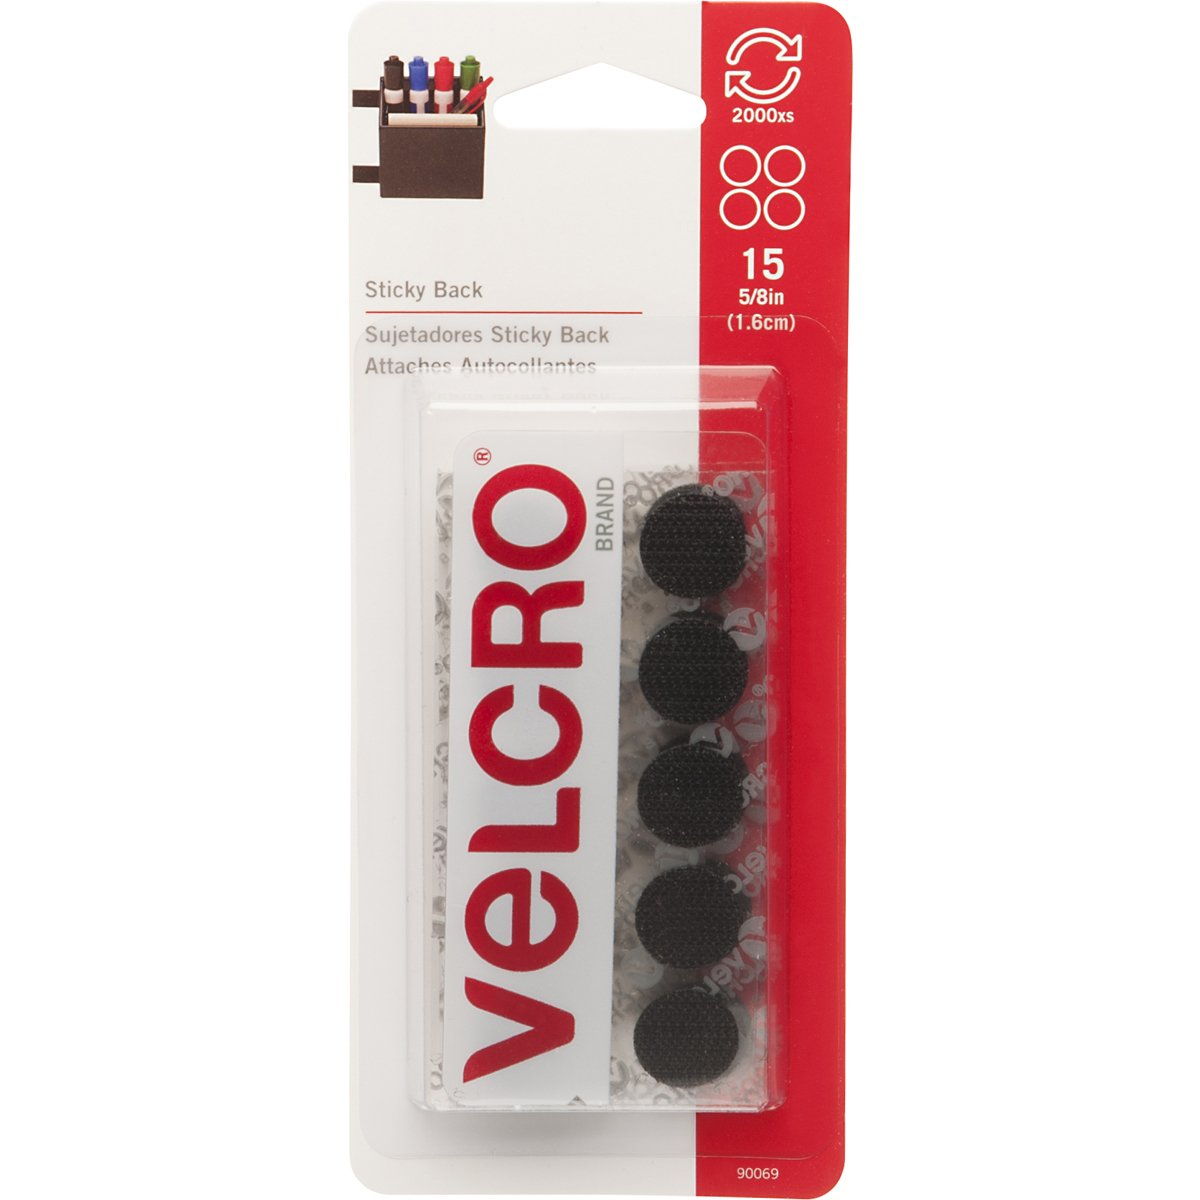 VELCRO Brand - Sticky Back - 3 1/2 x 3/4 Strips, 10 Sets - White Velcro USA Inc. 90162